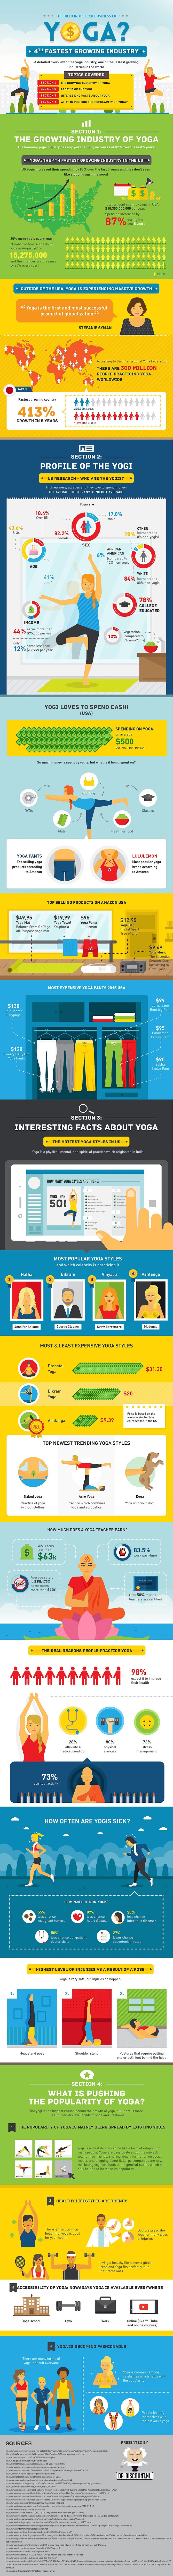 The Yoga Industry a Billion Dollar Business (Infographic)